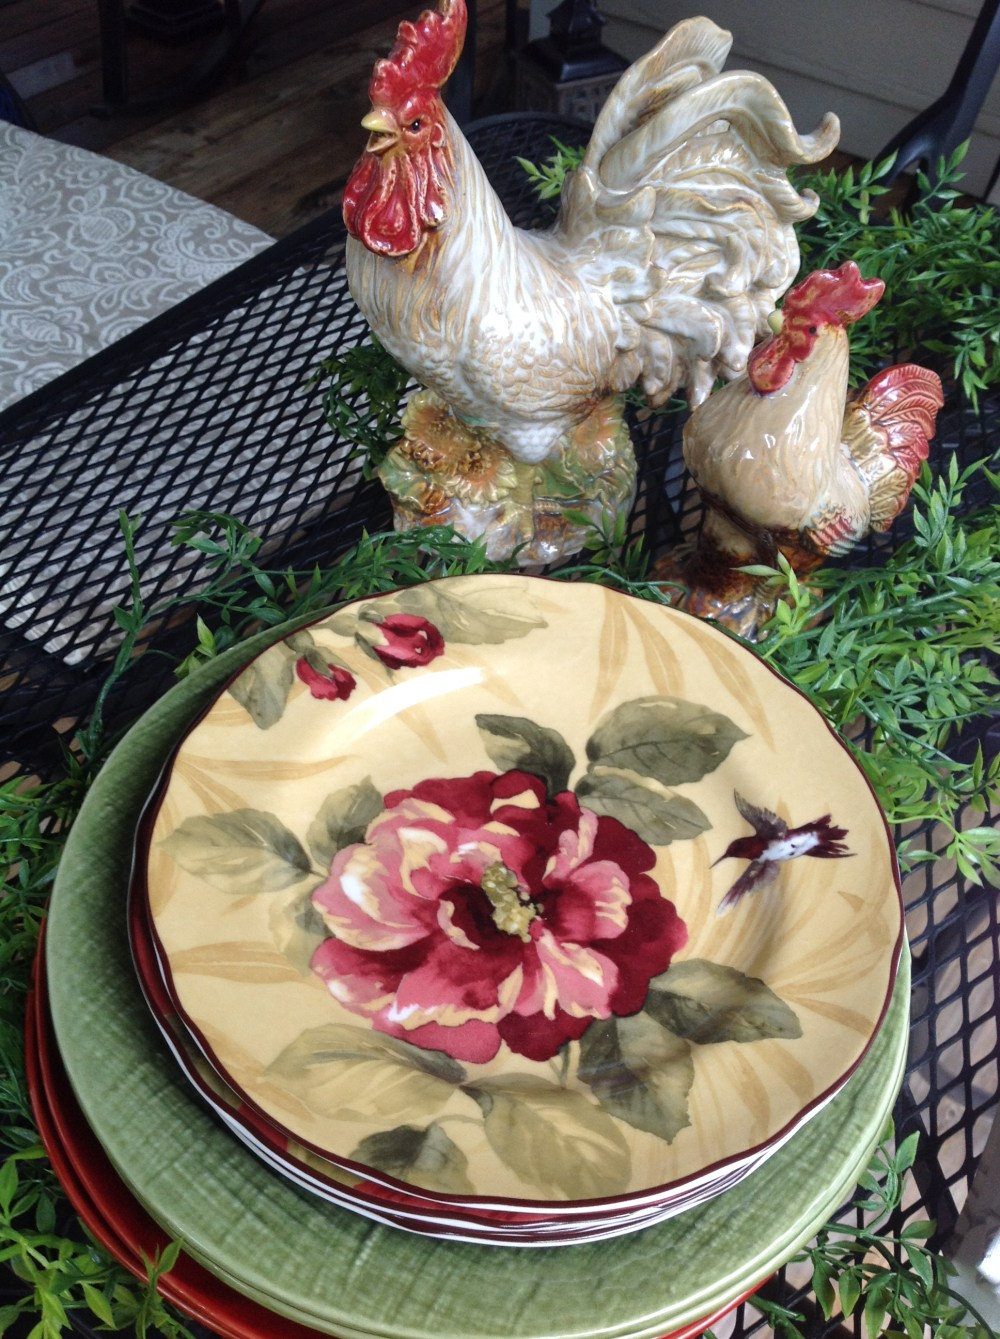 Joy of Decorating with Roosters – Inspired by Joy